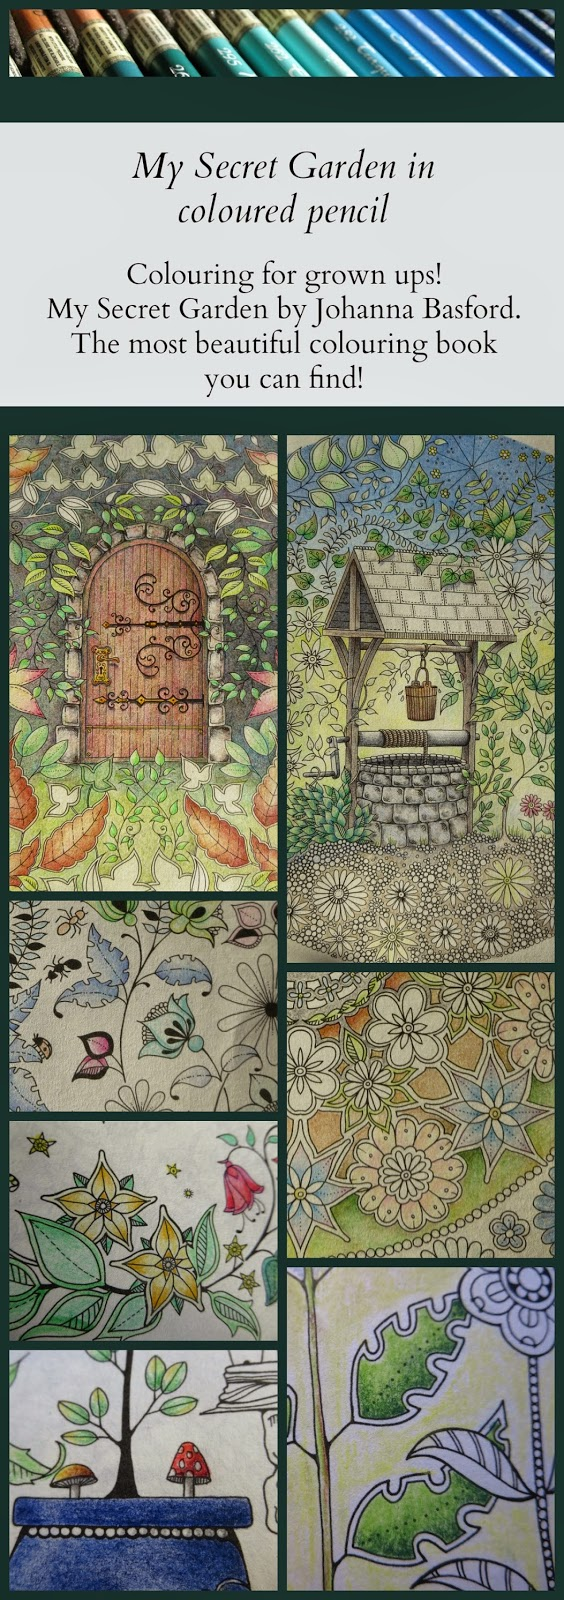 The secret garden coloring book finished - My Secret Garden Colouring Book Part 3